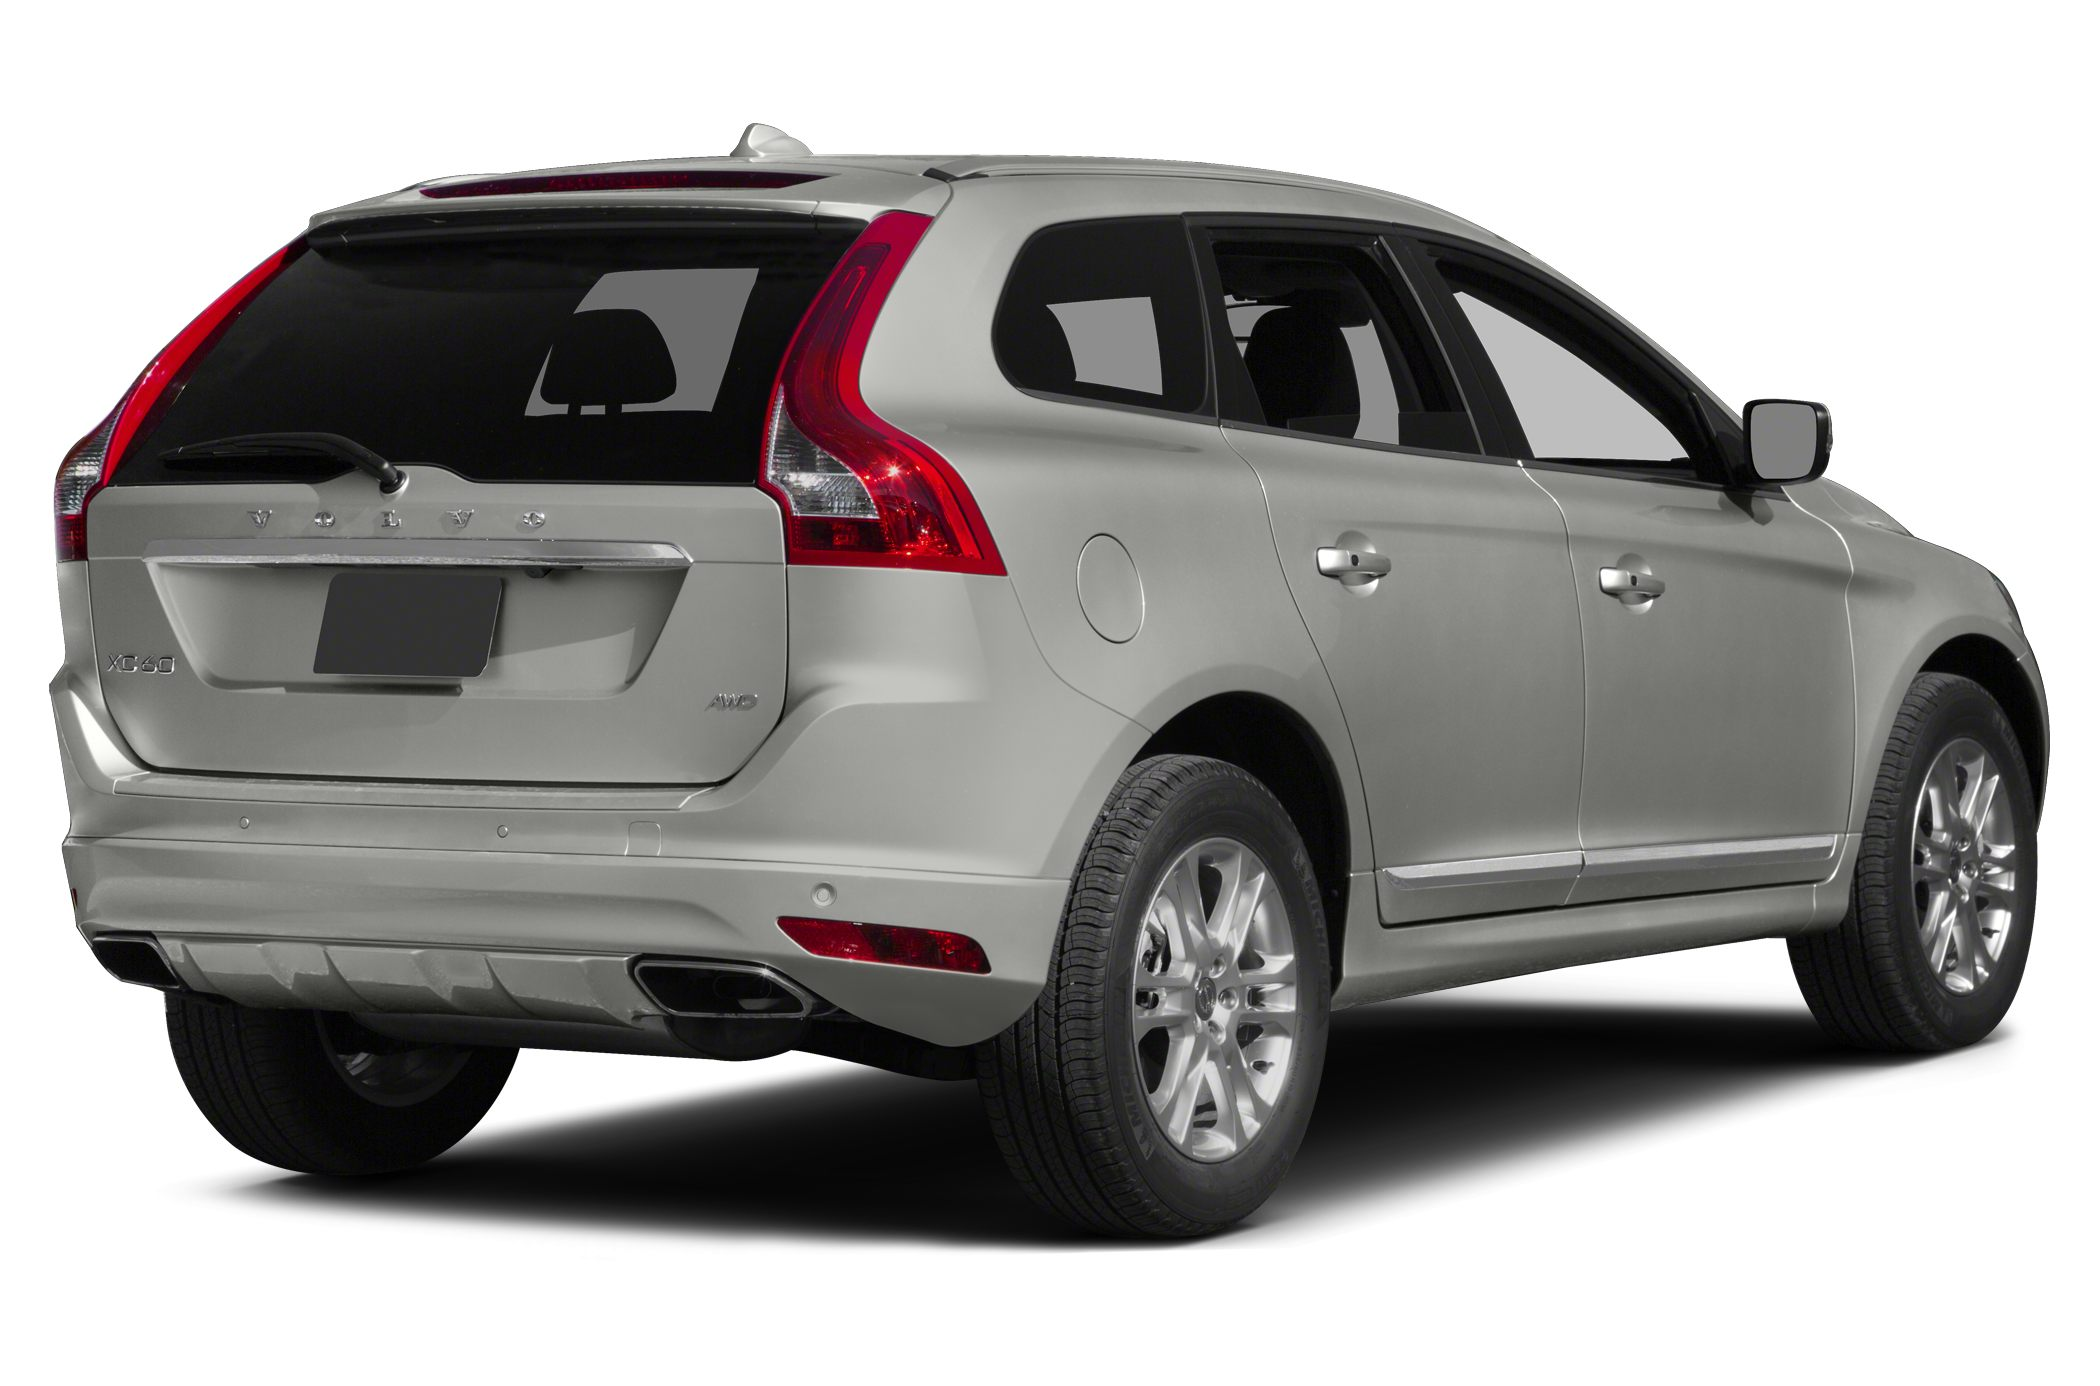 2015 5 volvo xc60 t5 4dr all wheel drive pictures. Black Bedroom Furniture Sets. Home Design Ideas